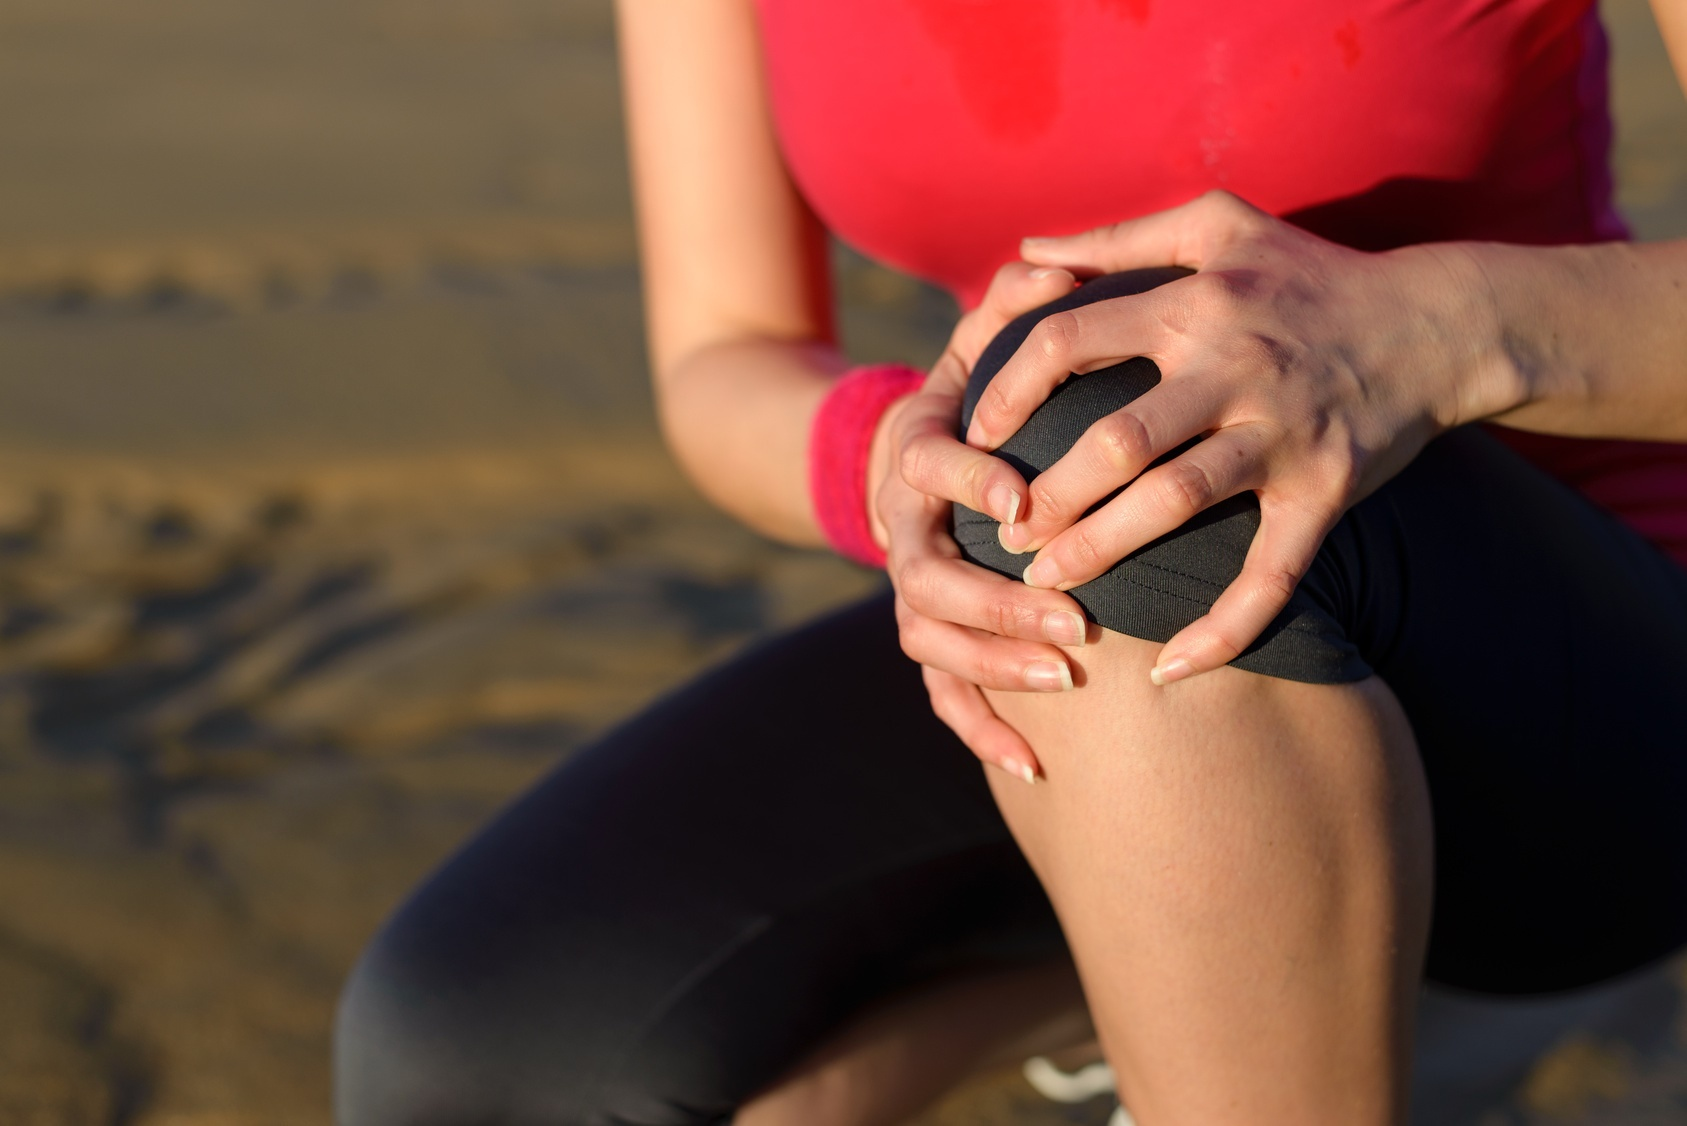 the most common knee injuries